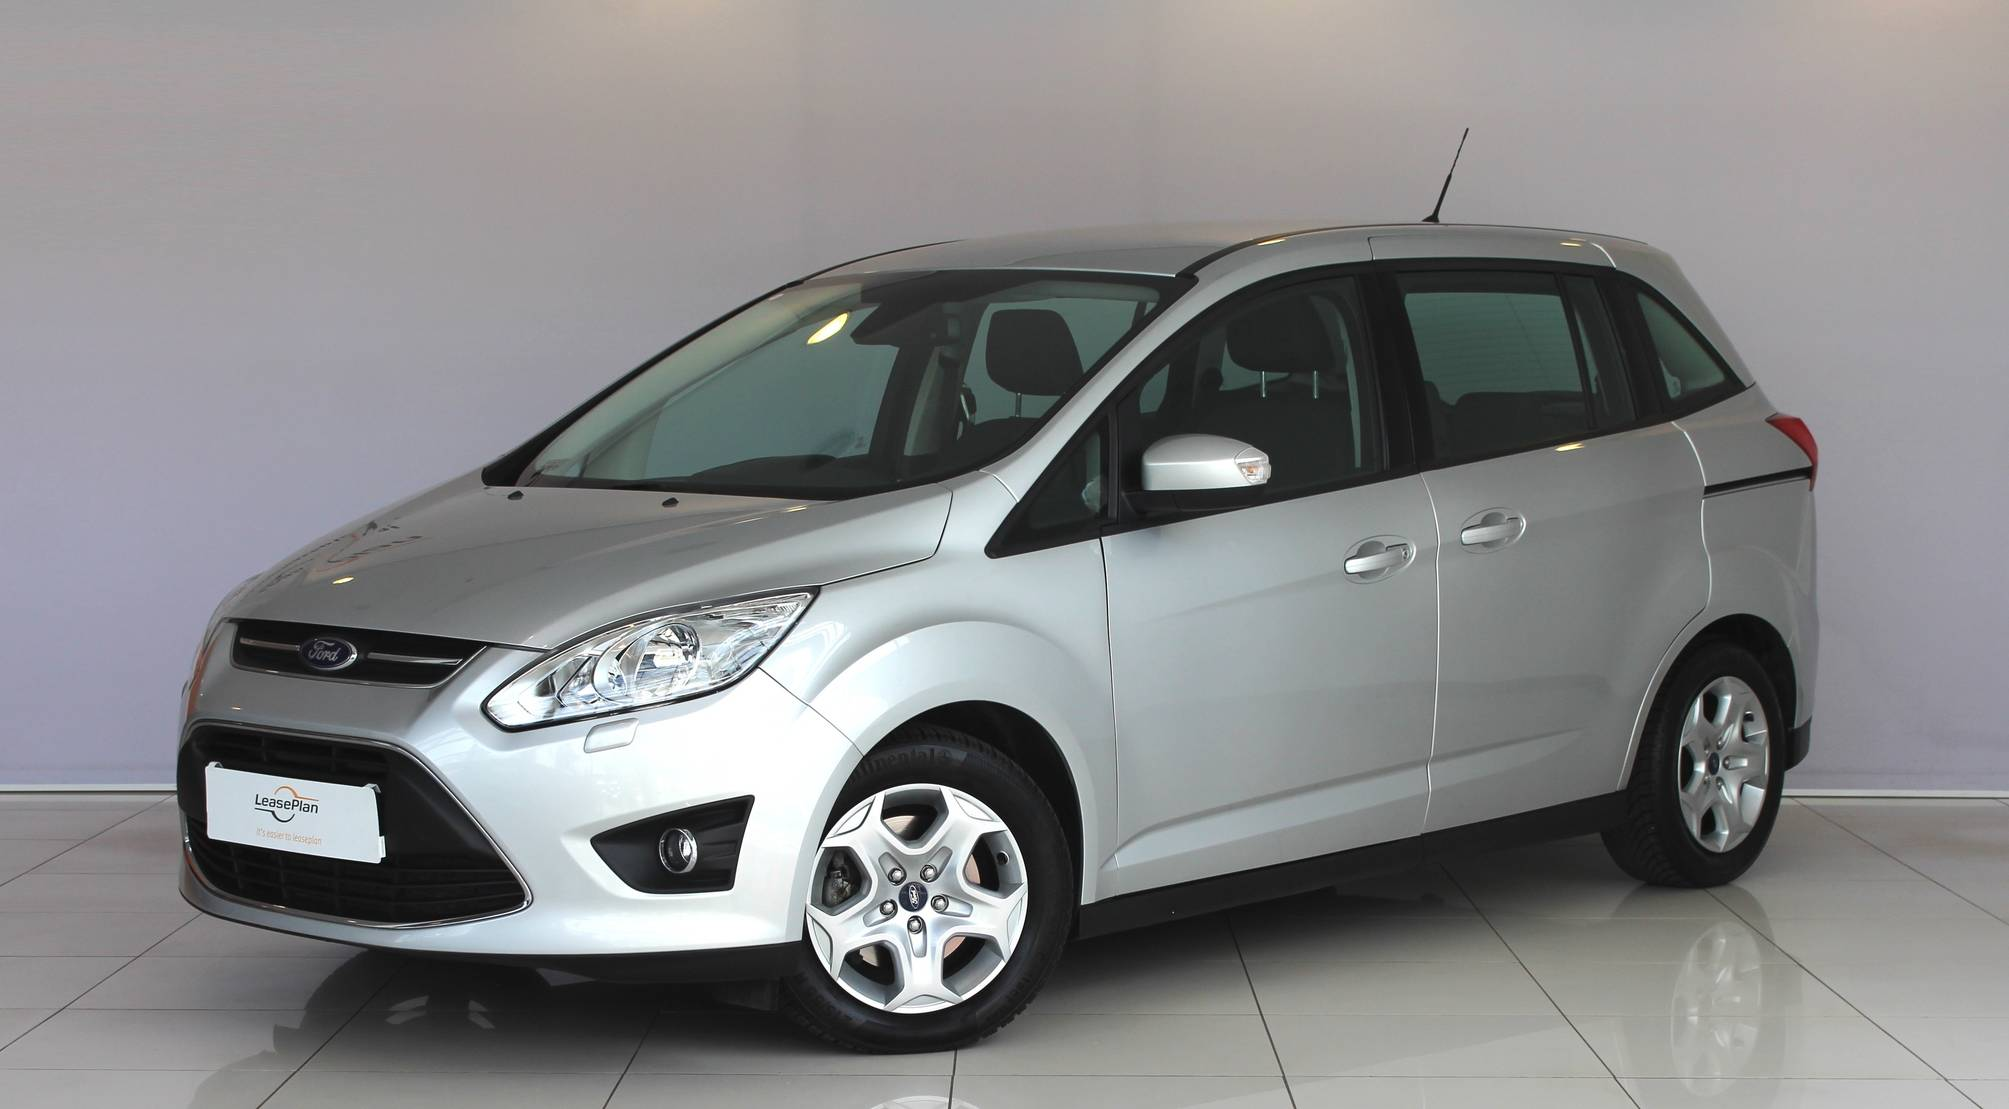 Ford Grand C-Max 2.0 TDCi, Trend detail1